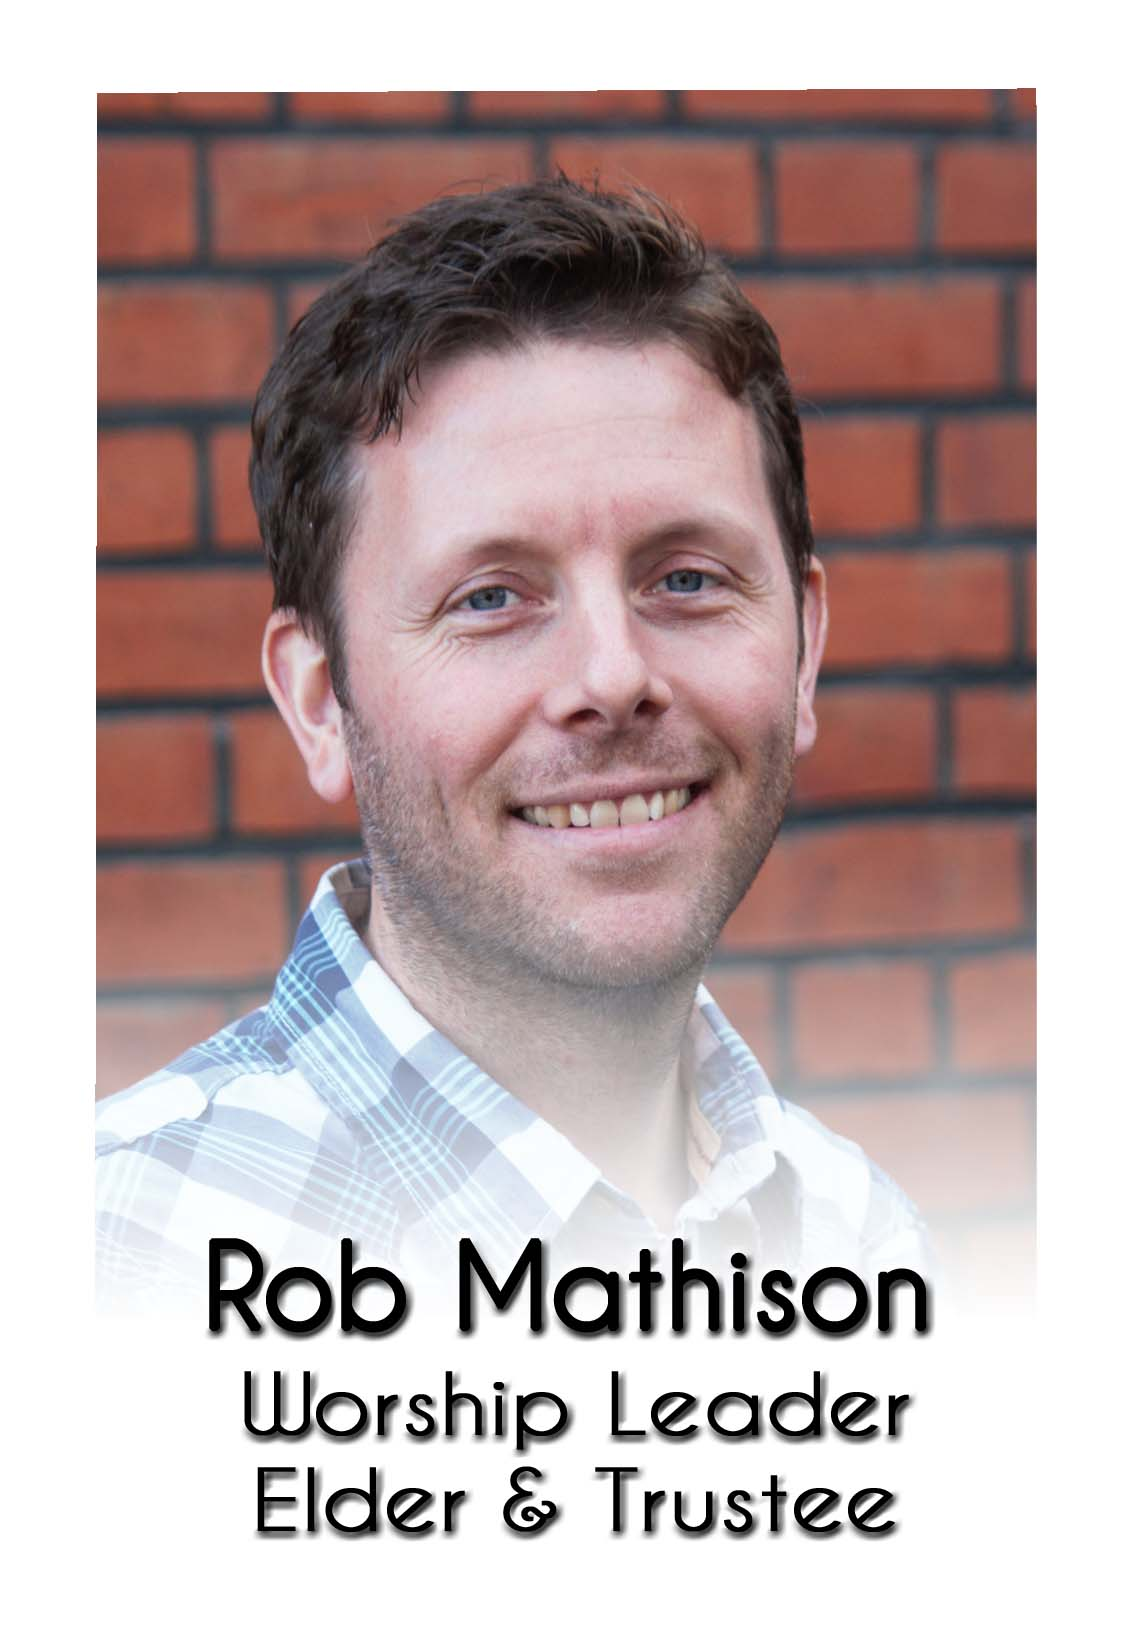 Rob Mathison labelled